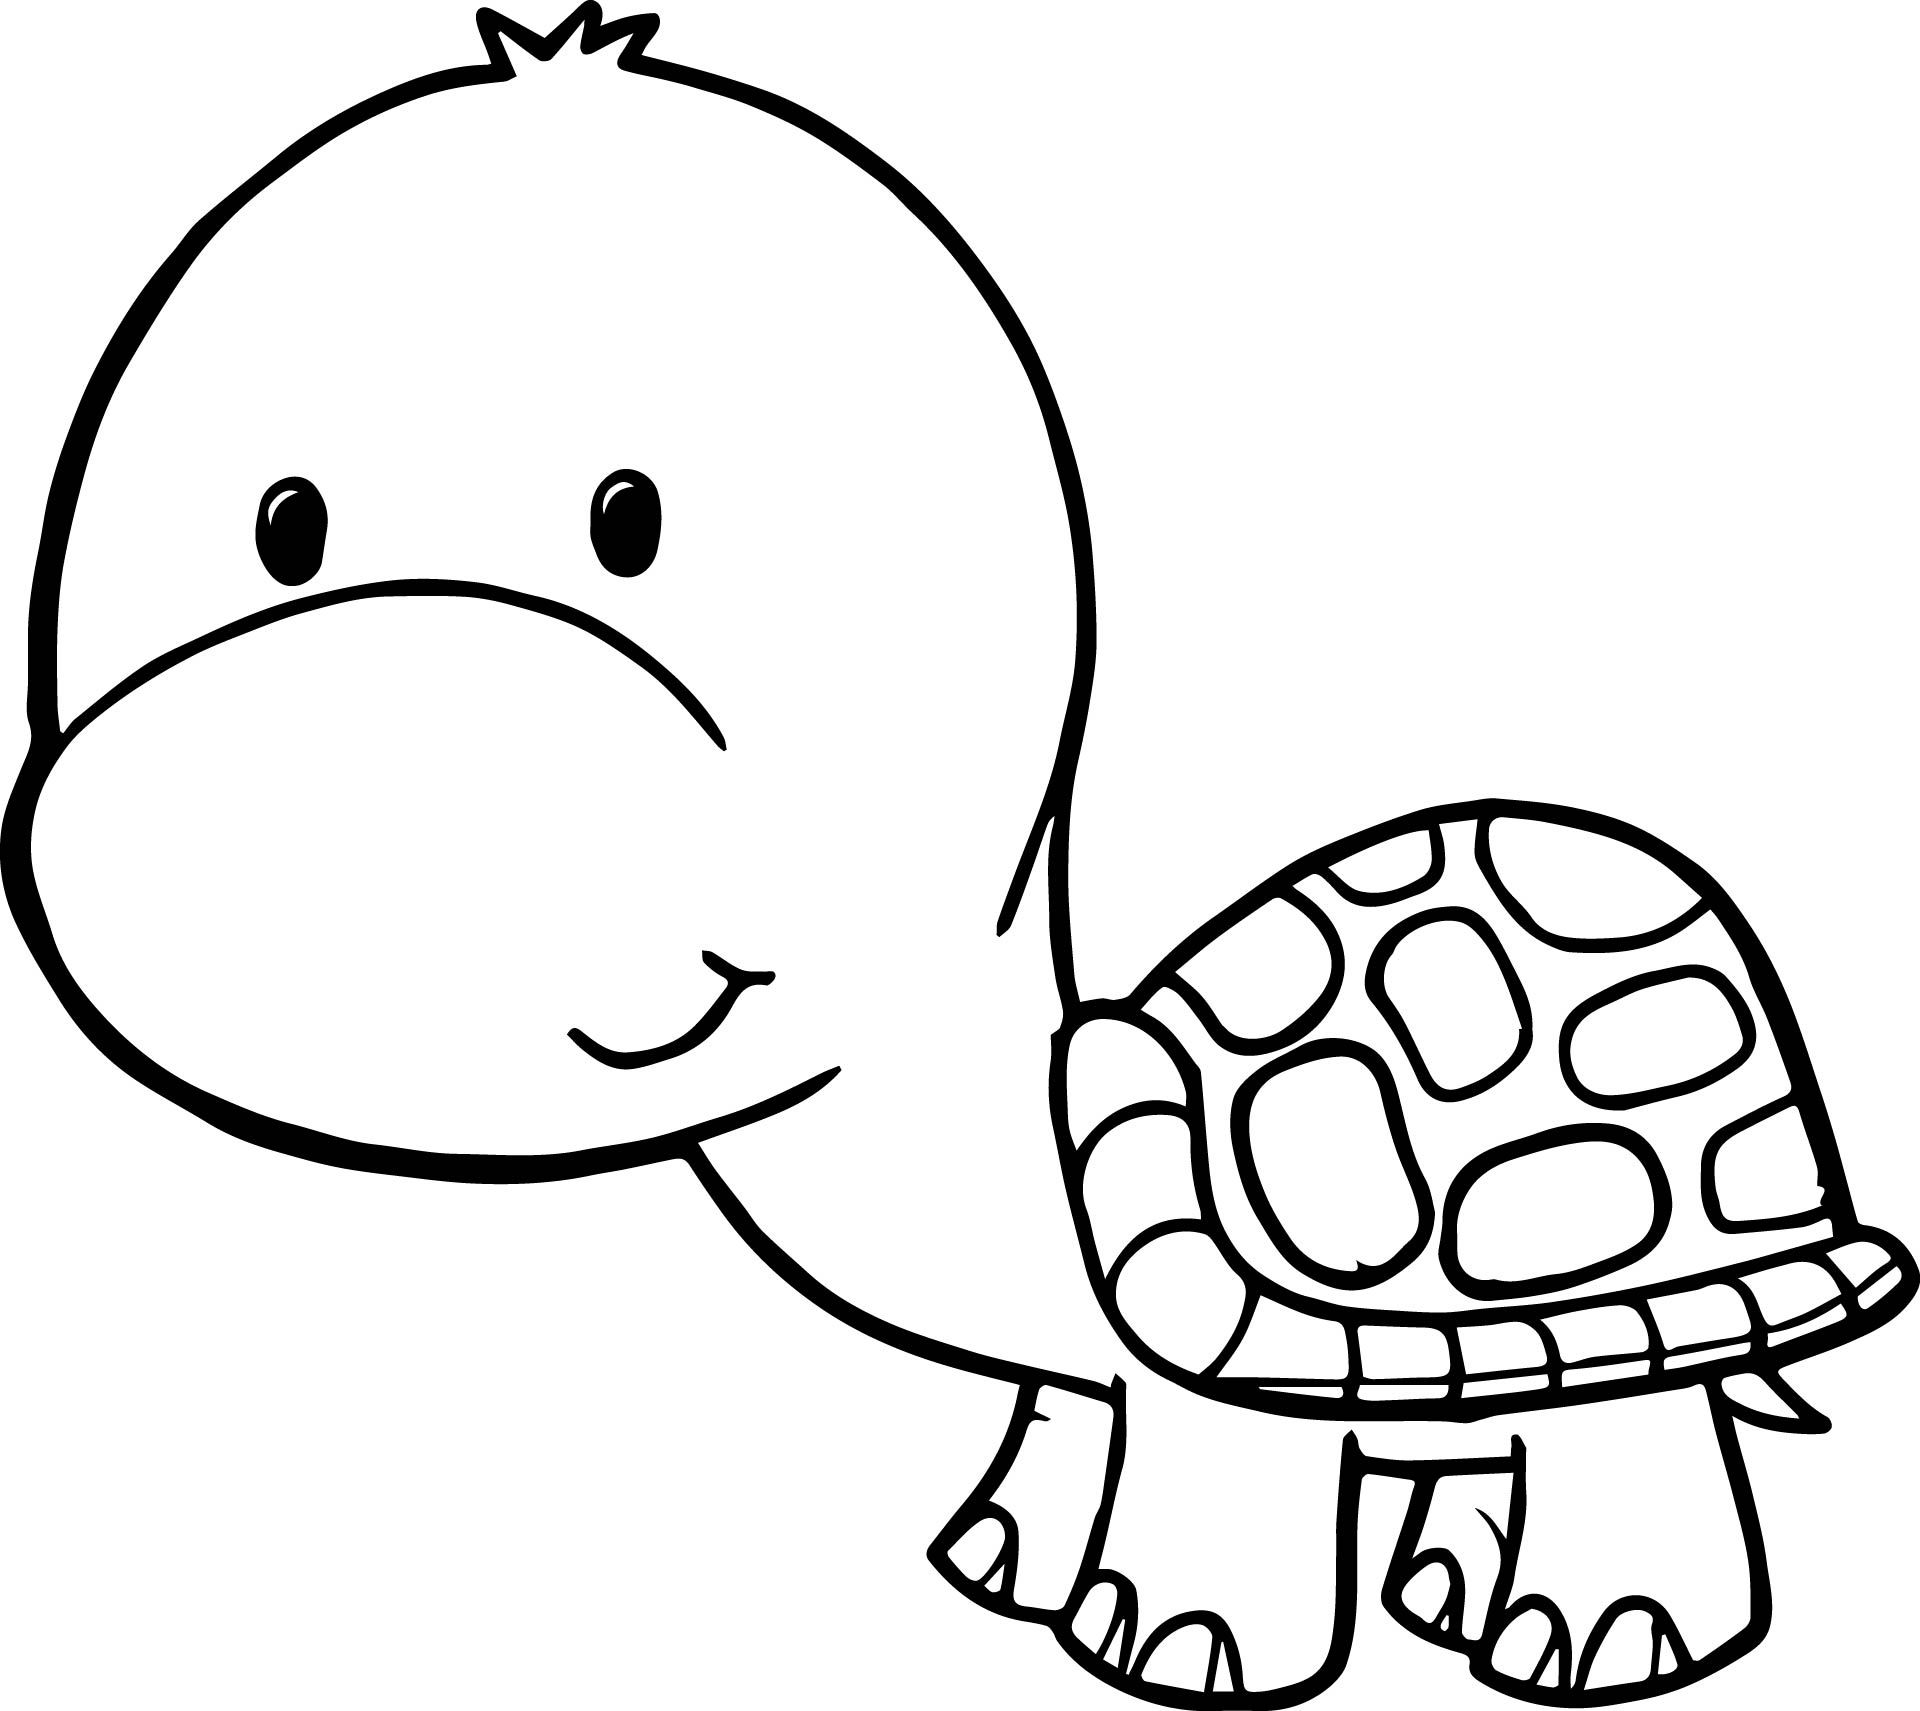 coloring picture turtle turtles free to color for children turtles kids coloring picture coloring turtle